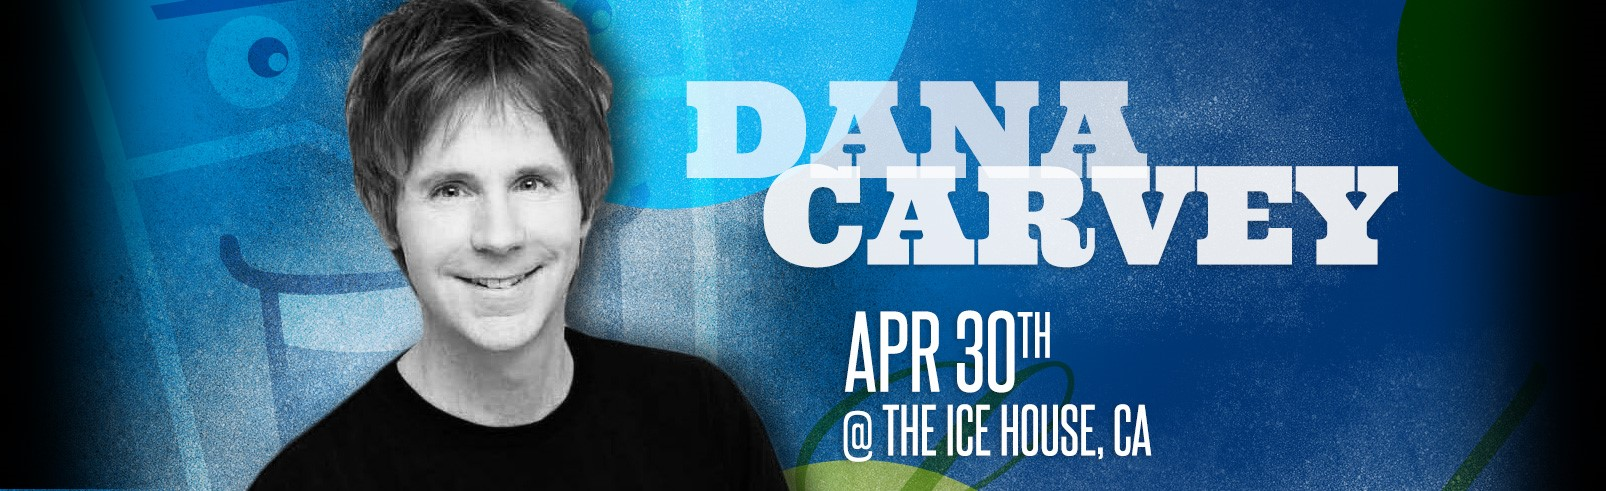 Dana Carvey @ The Ice House